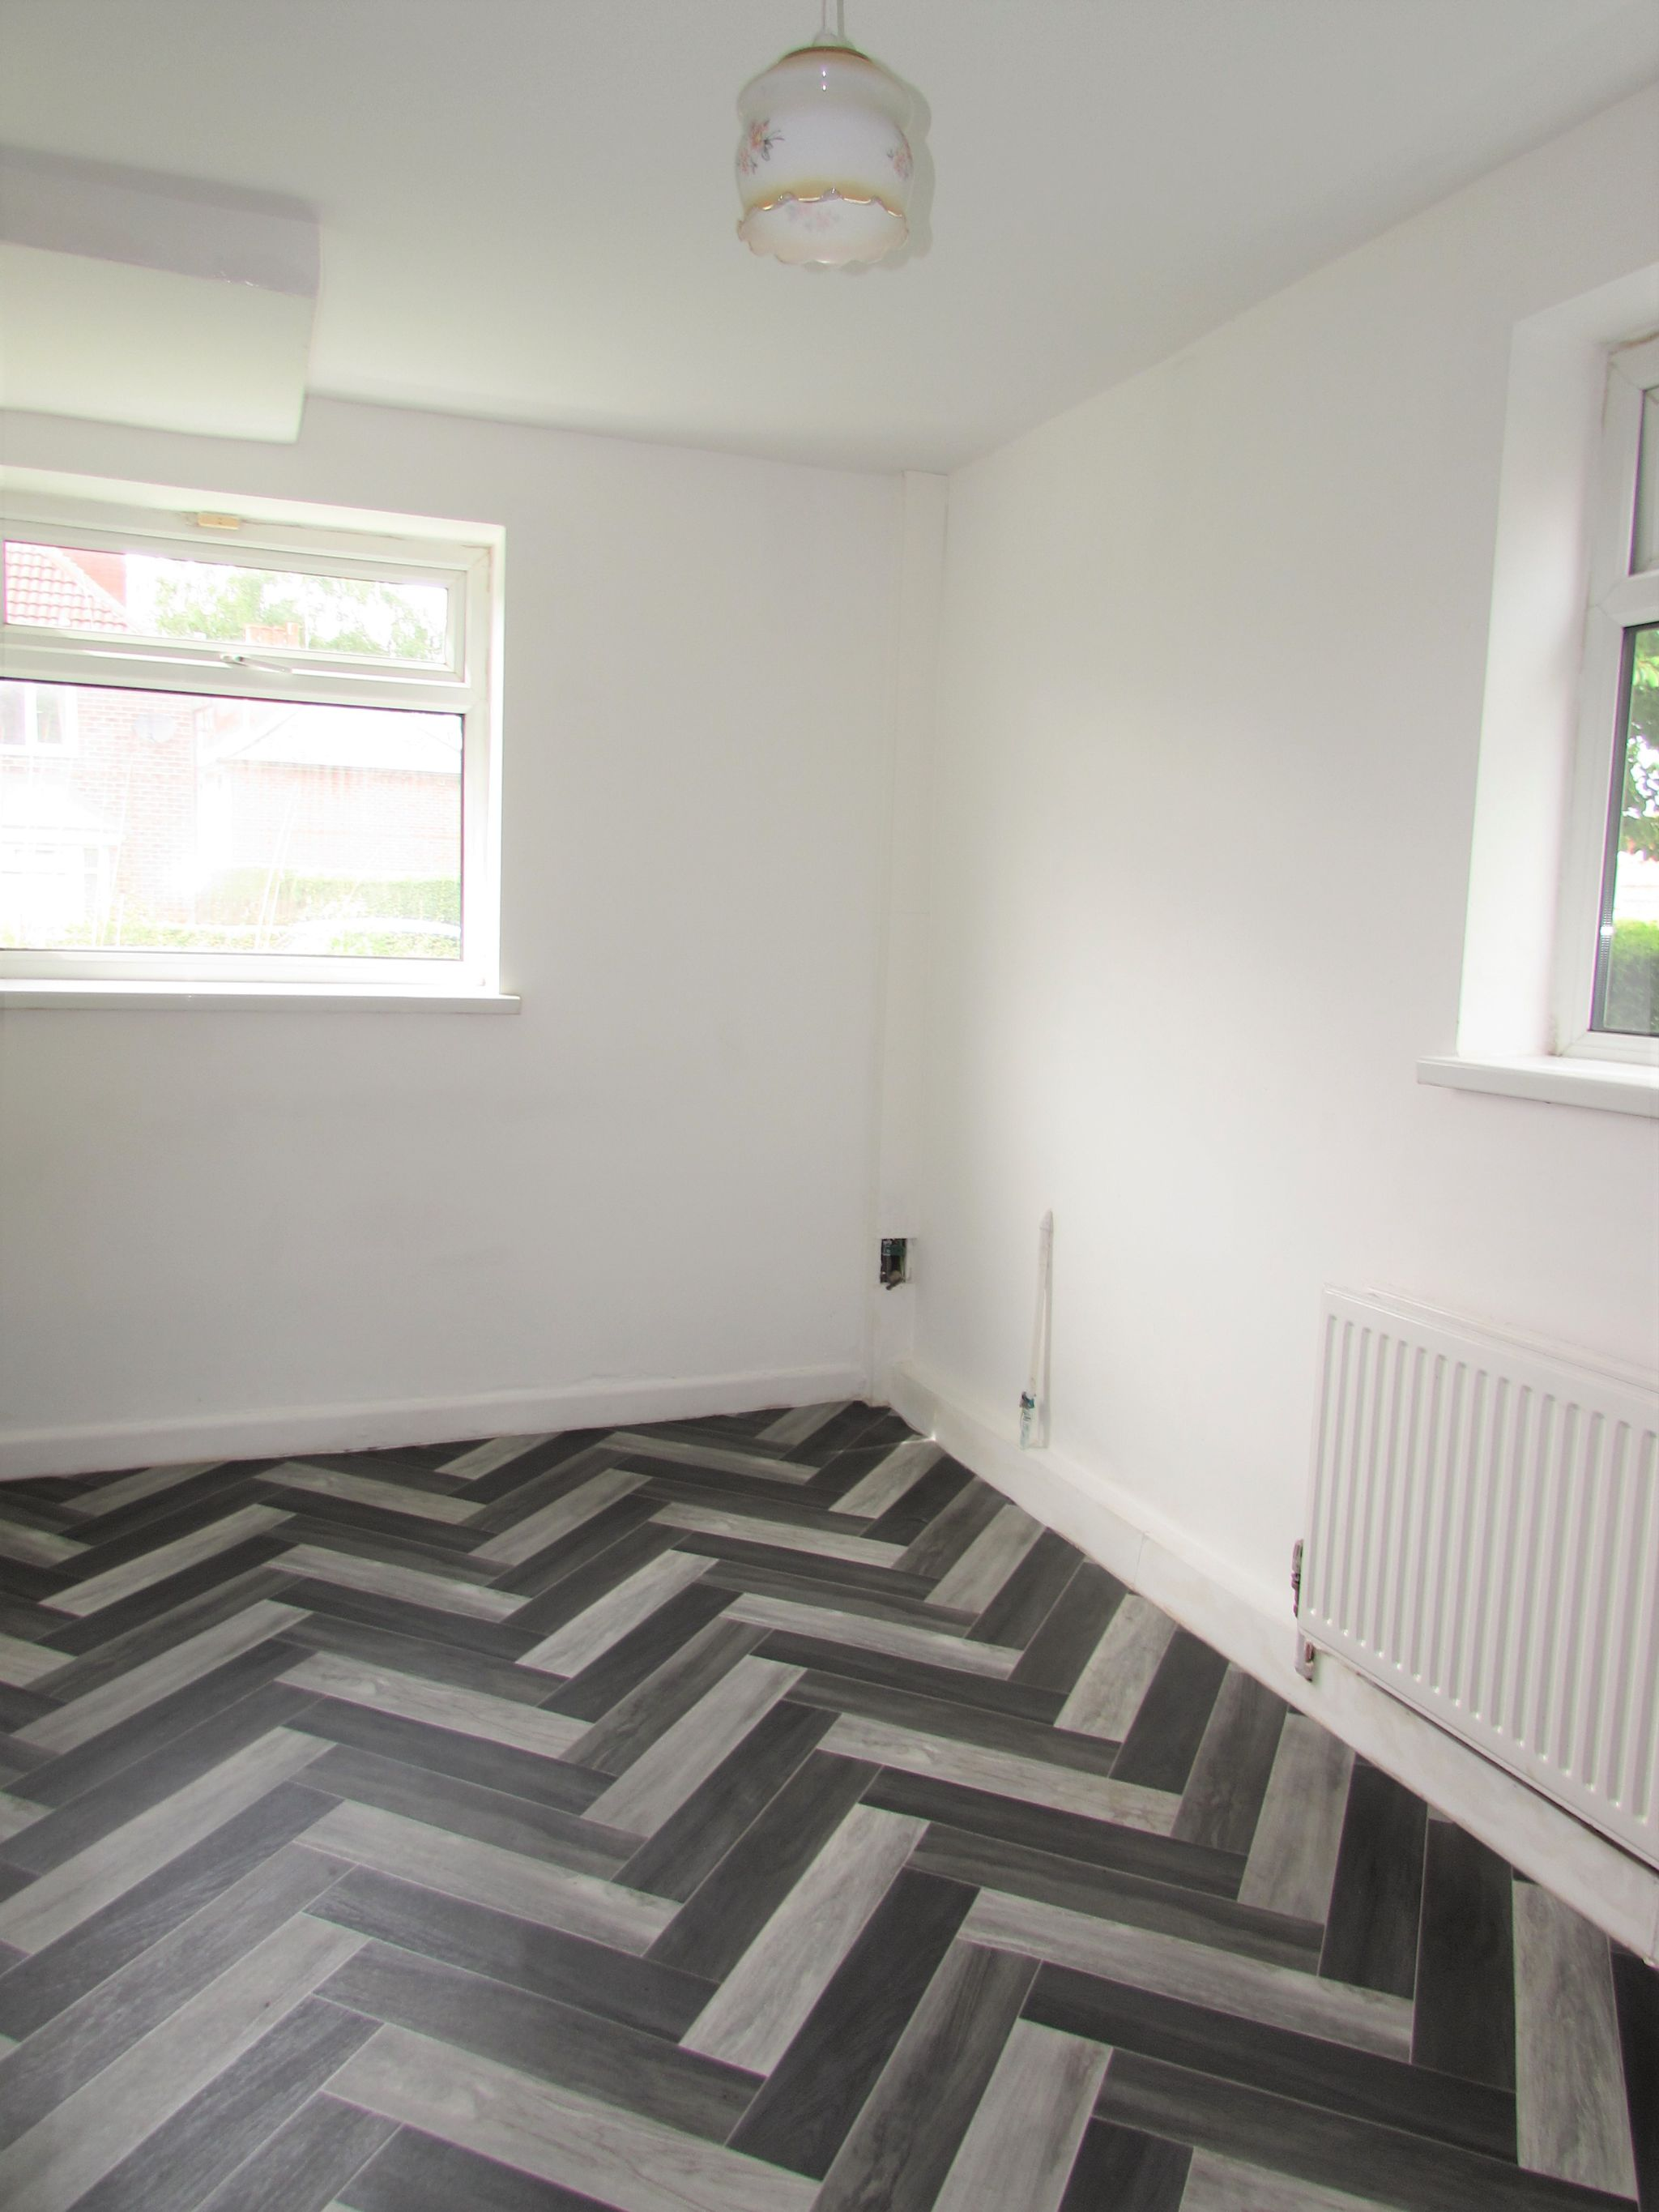 3 Bedroom Semi-detached House To Rent - Dining Area